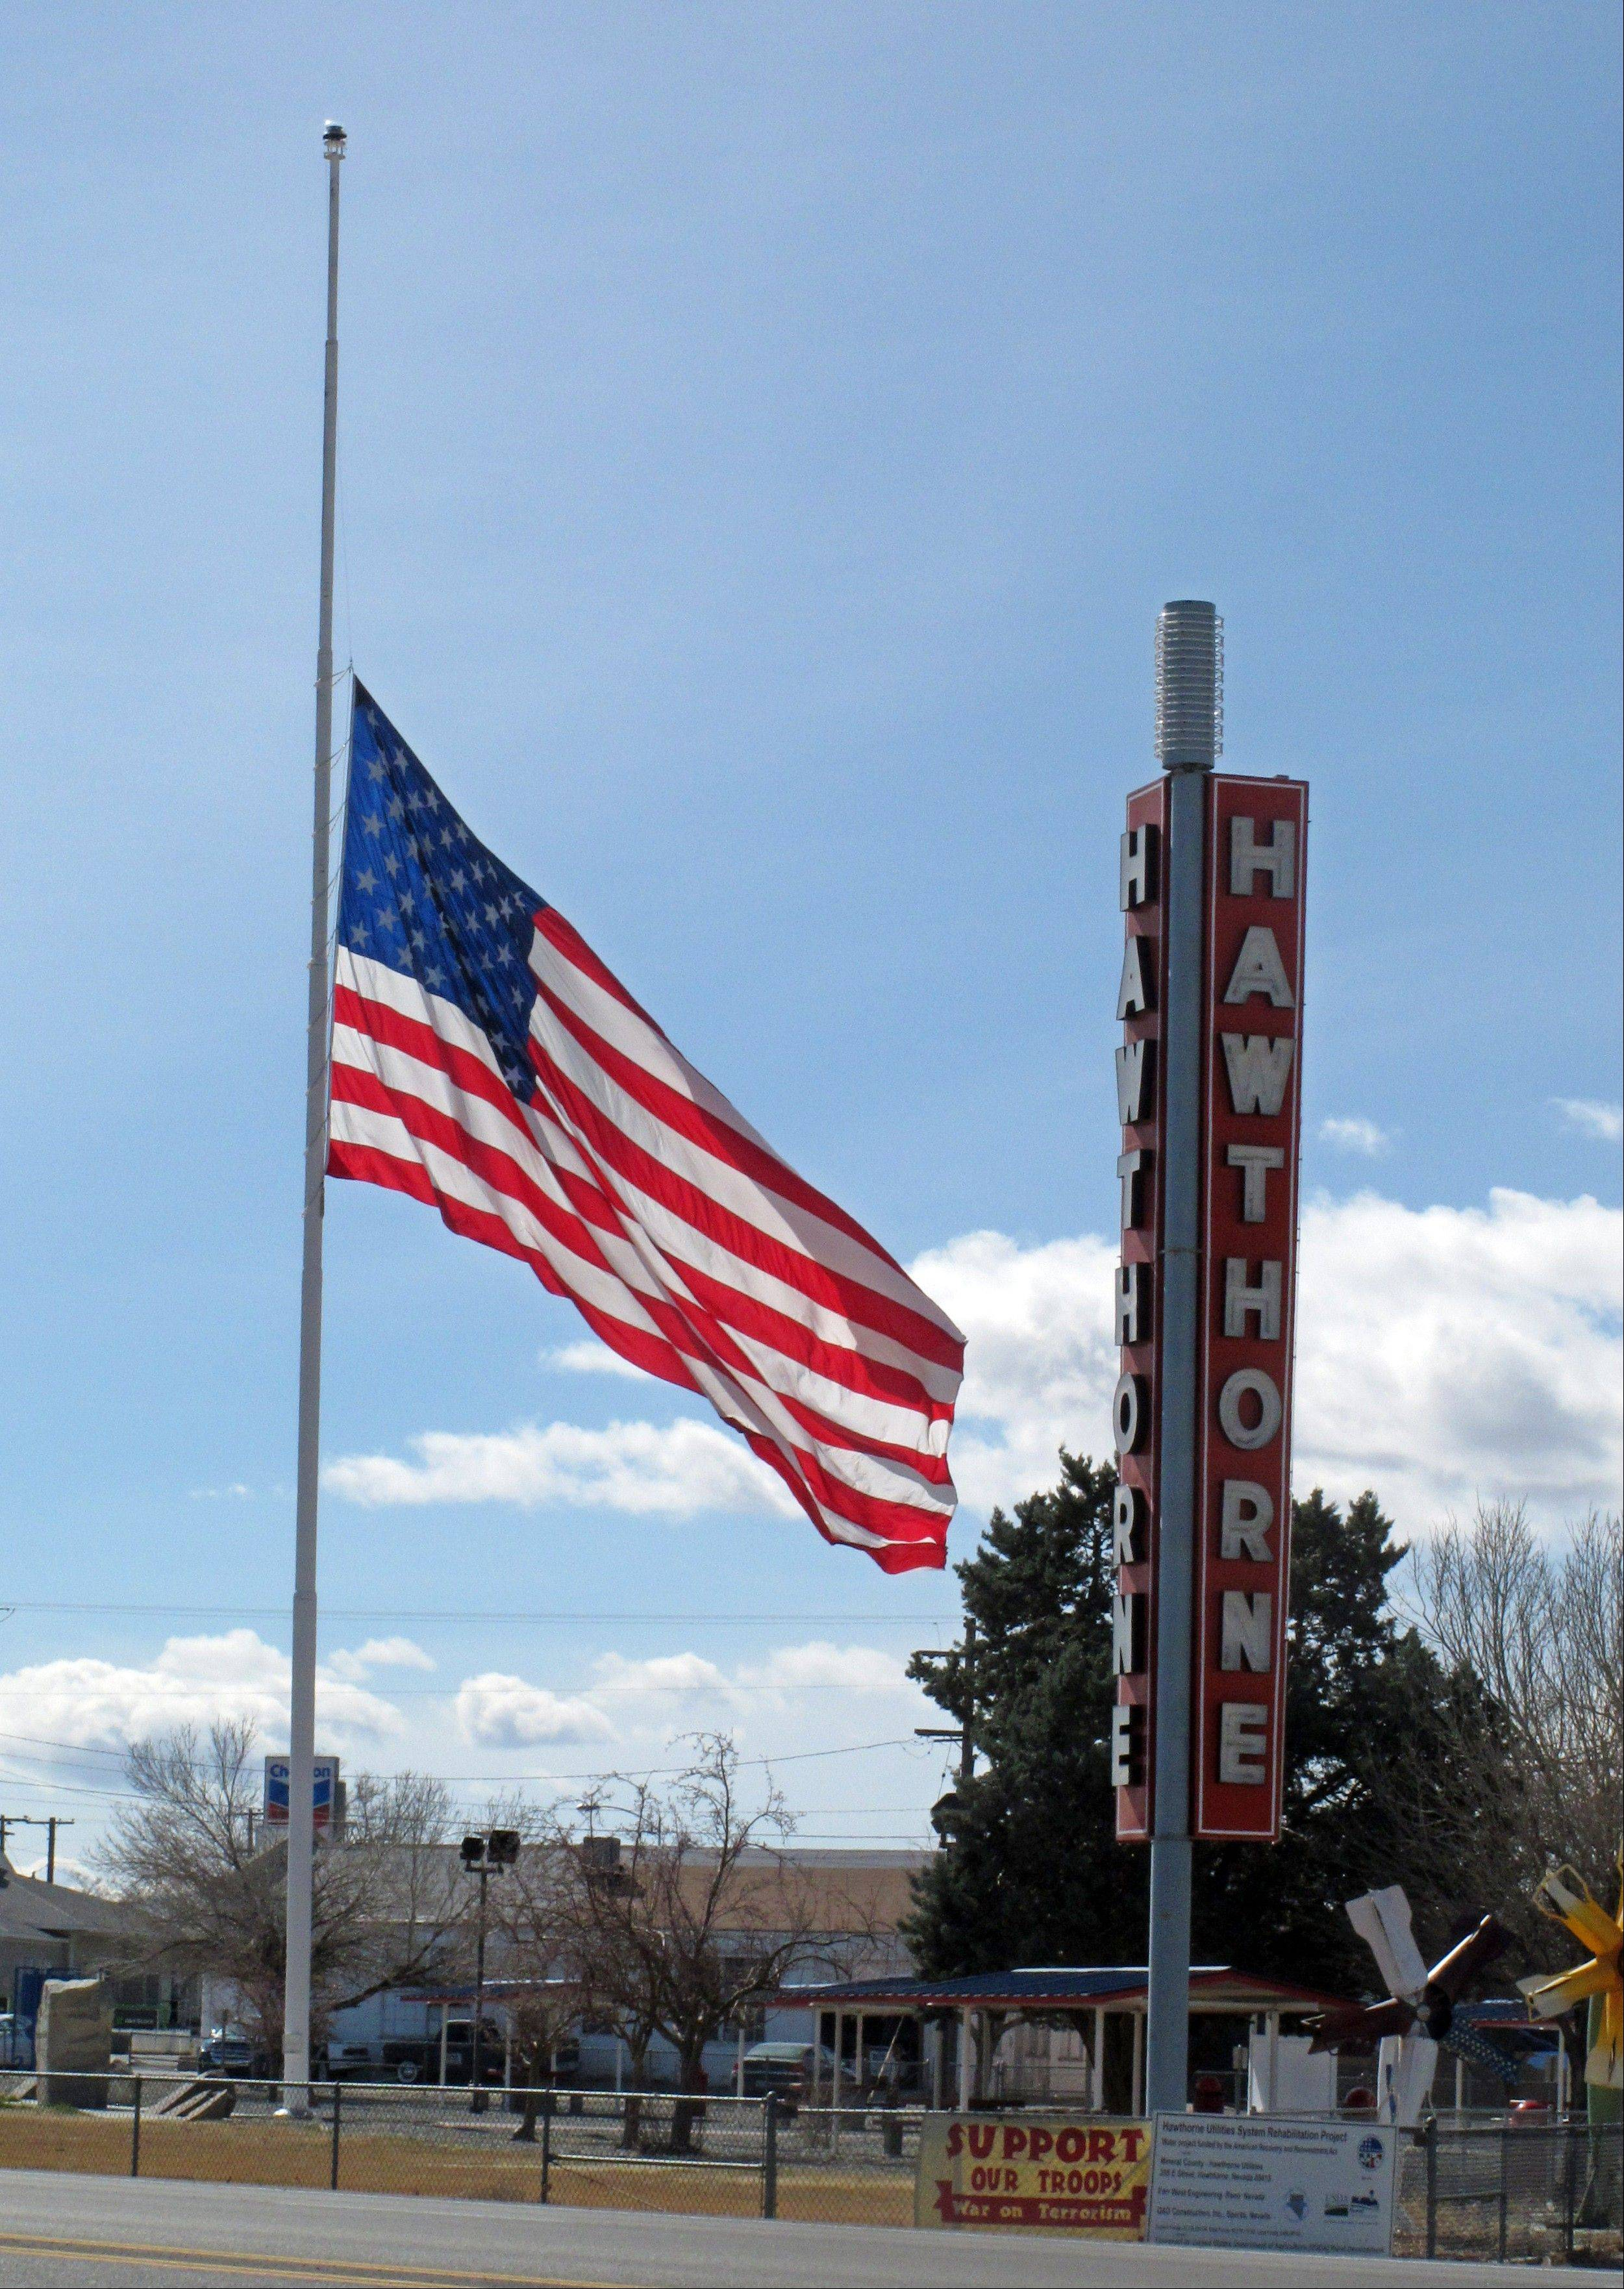 An American flag waves at half staff in the town of Hawthorne near the Hawthorne Army Depot on Tuesday, March 19, 2013, where seven Marines were killed and several others seriously injured in a training accident Monday night, about 150 miles southeast of Reno in Nevada�s high desert.